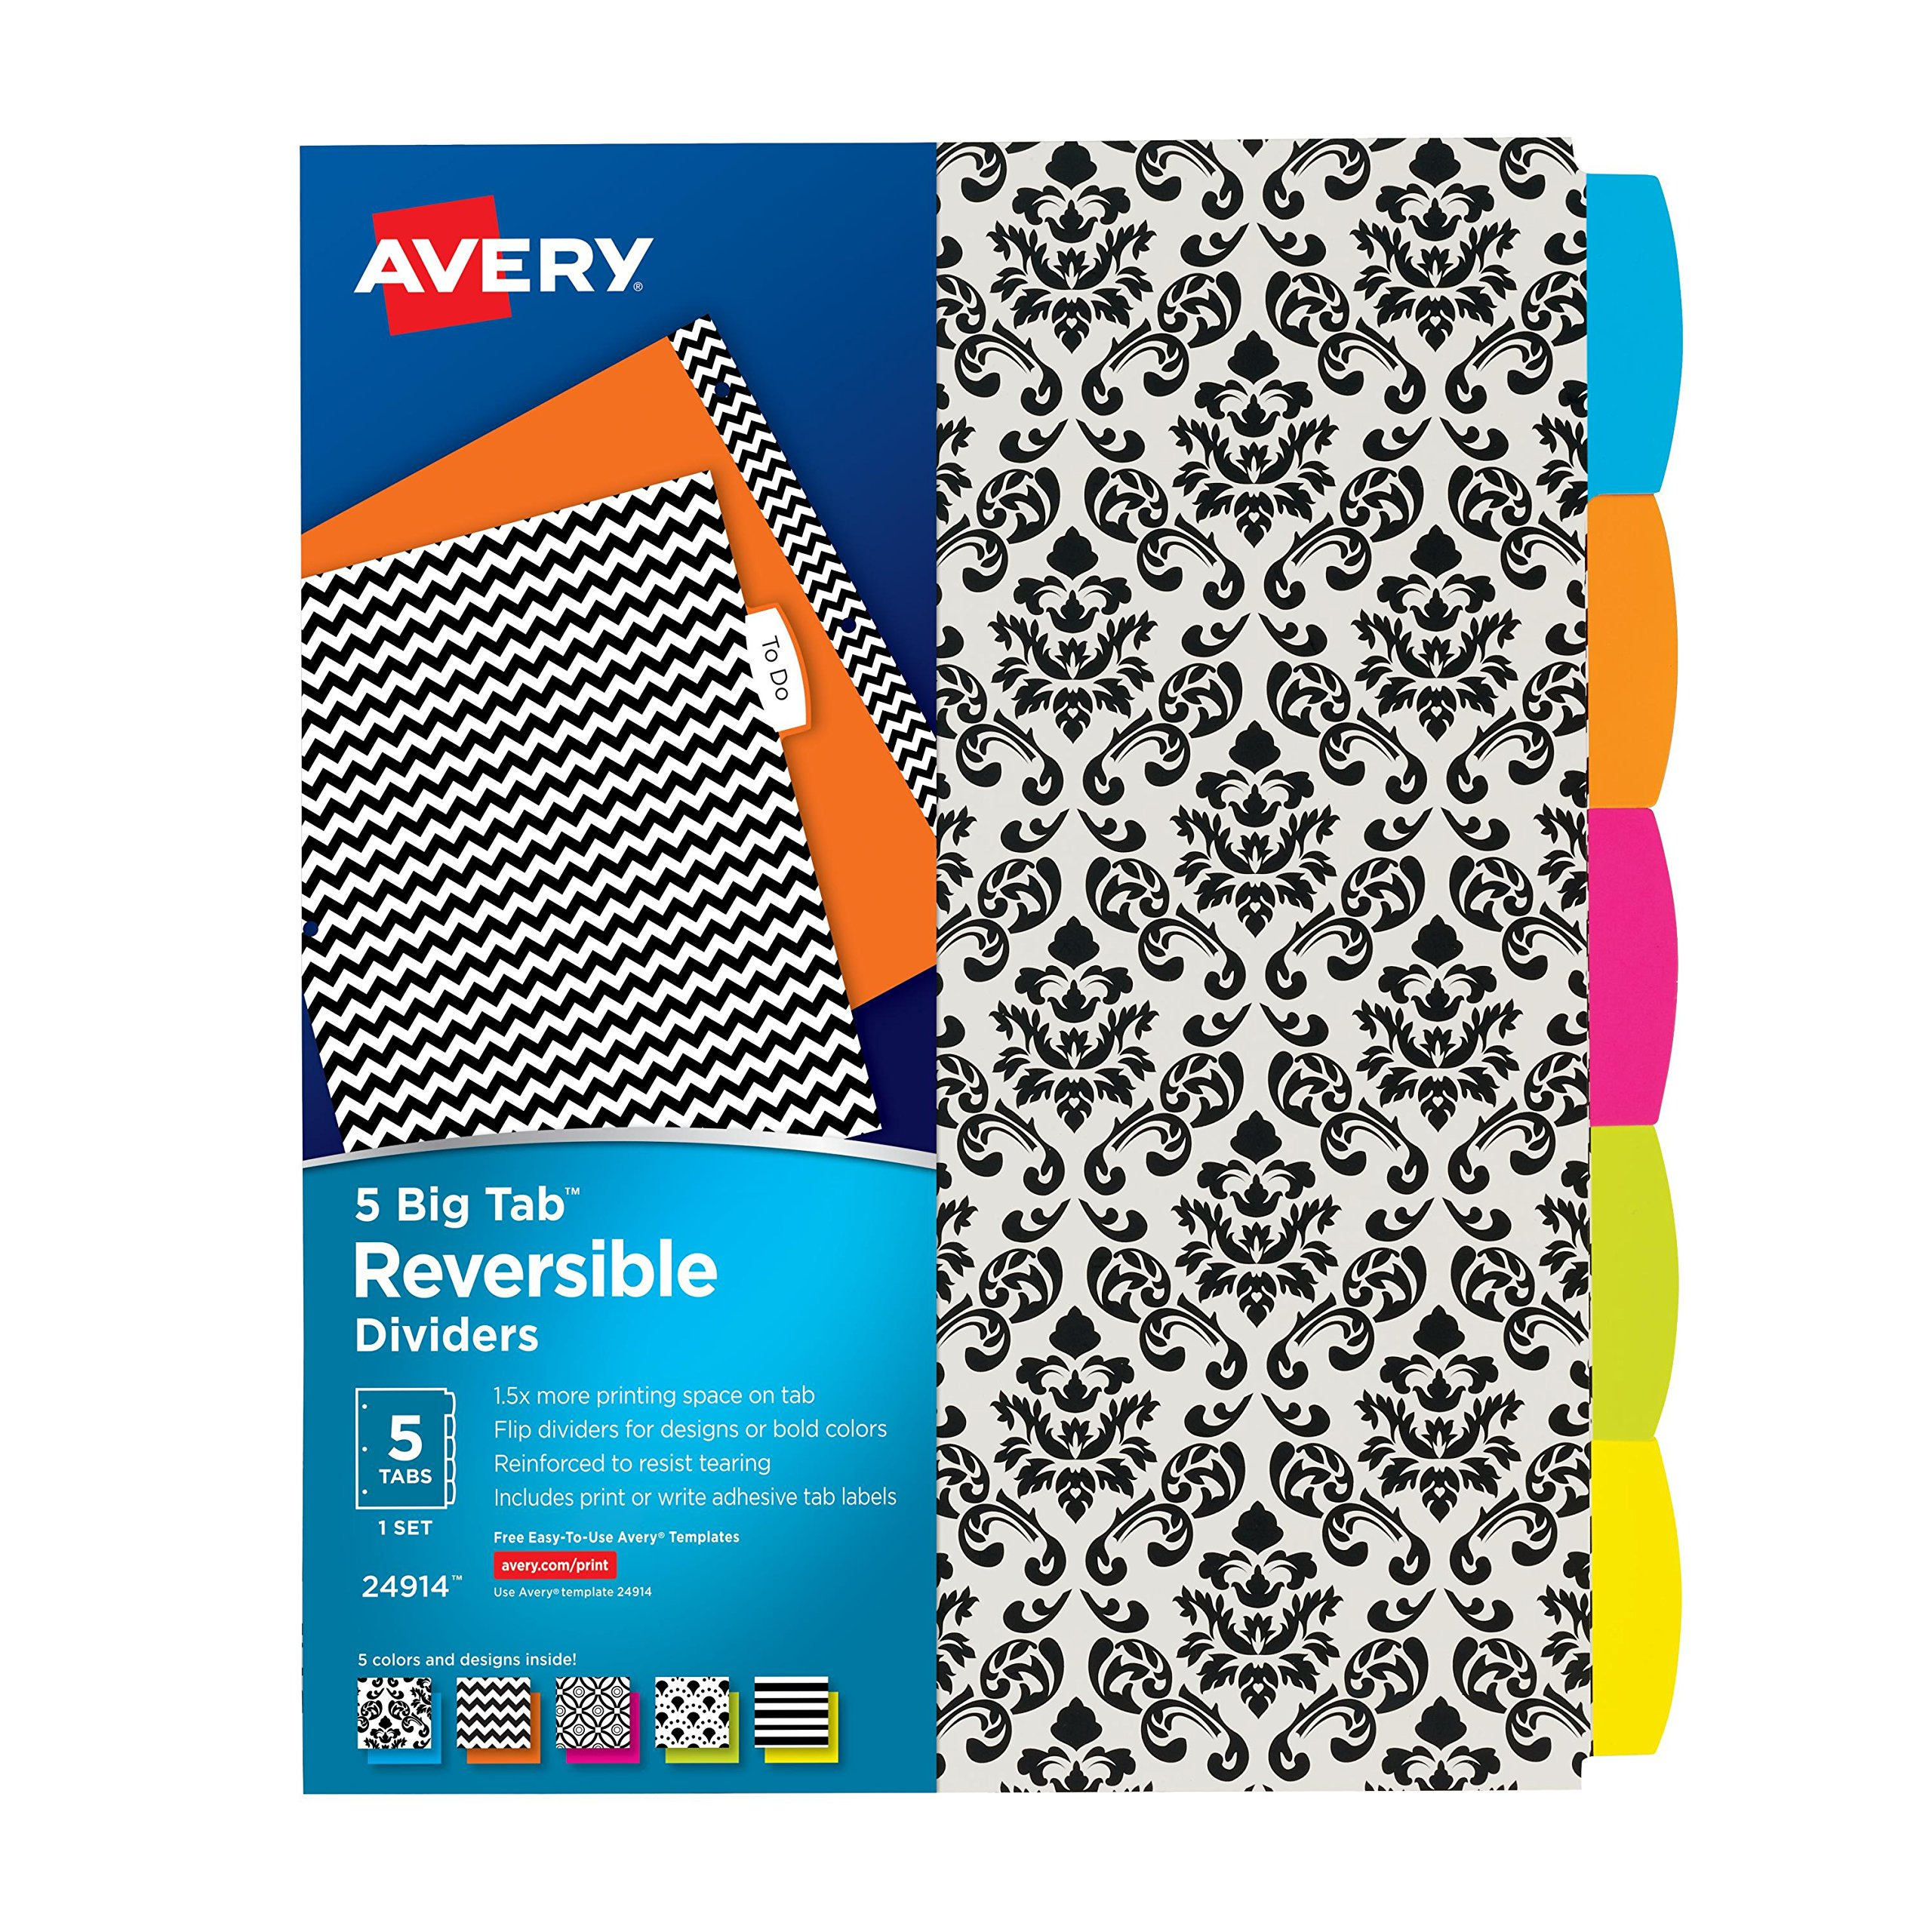 avery big tab reversible fashion dividers 5 tabs 1 set assorted designs